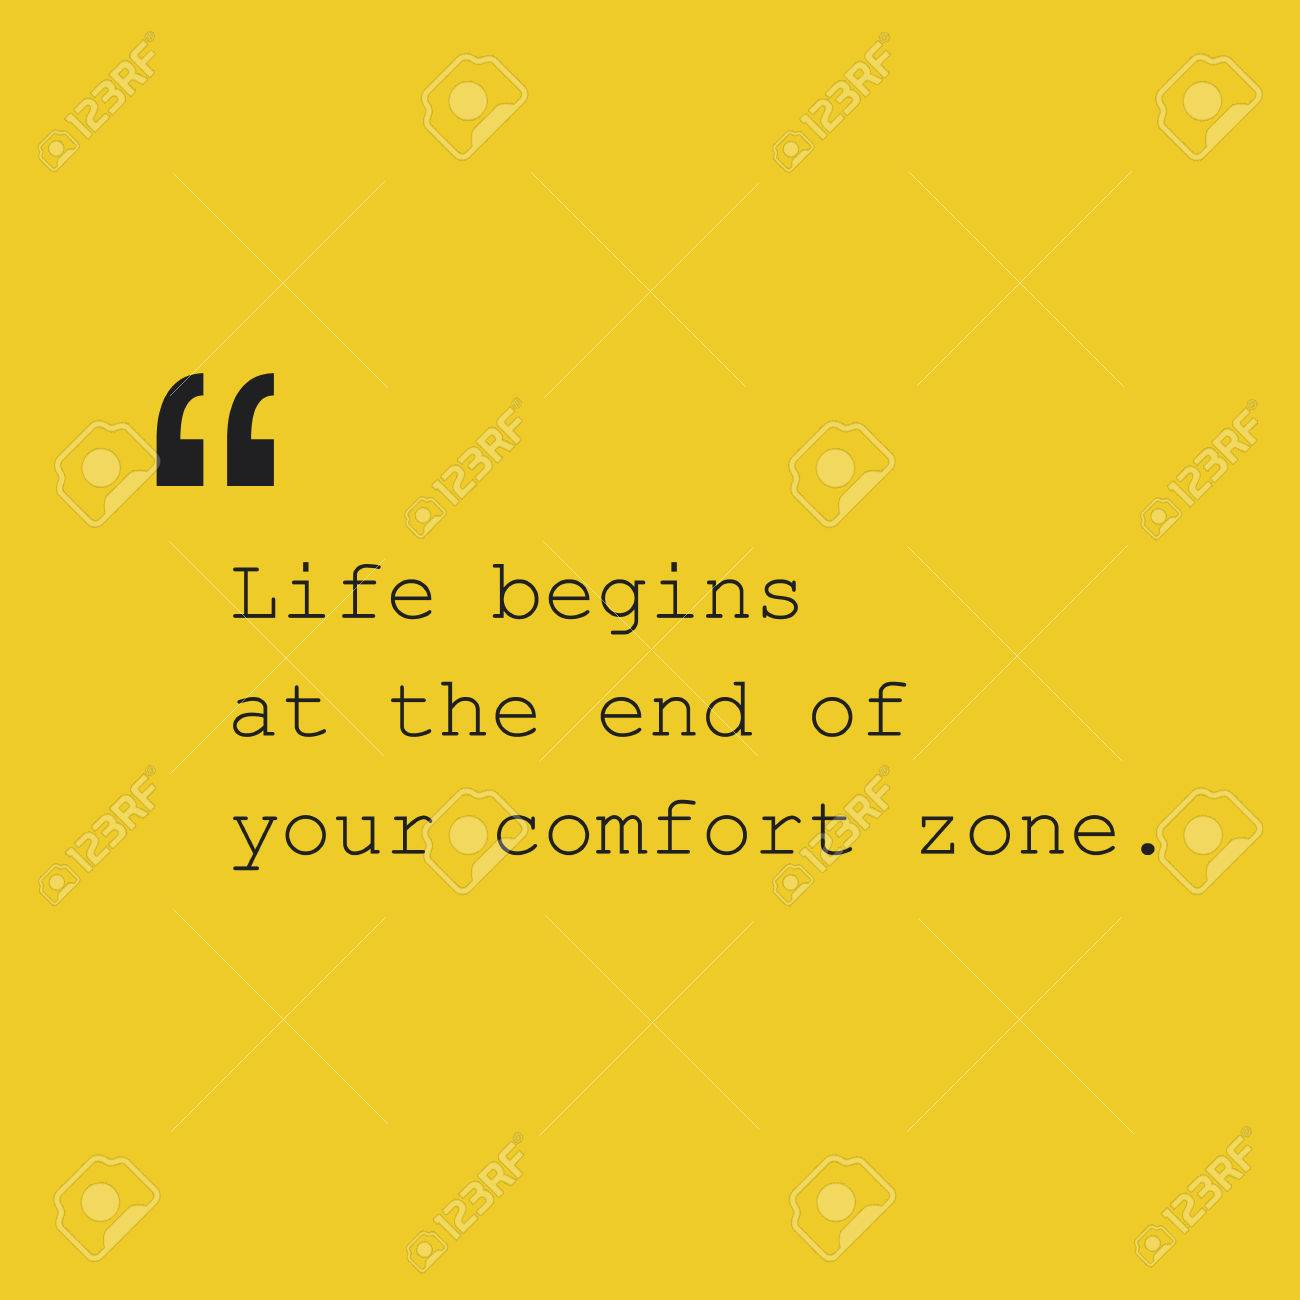 End Of Life Quotes Inspirational Life Begins At The End Of Your Comfort Zone  Inspirational Quote